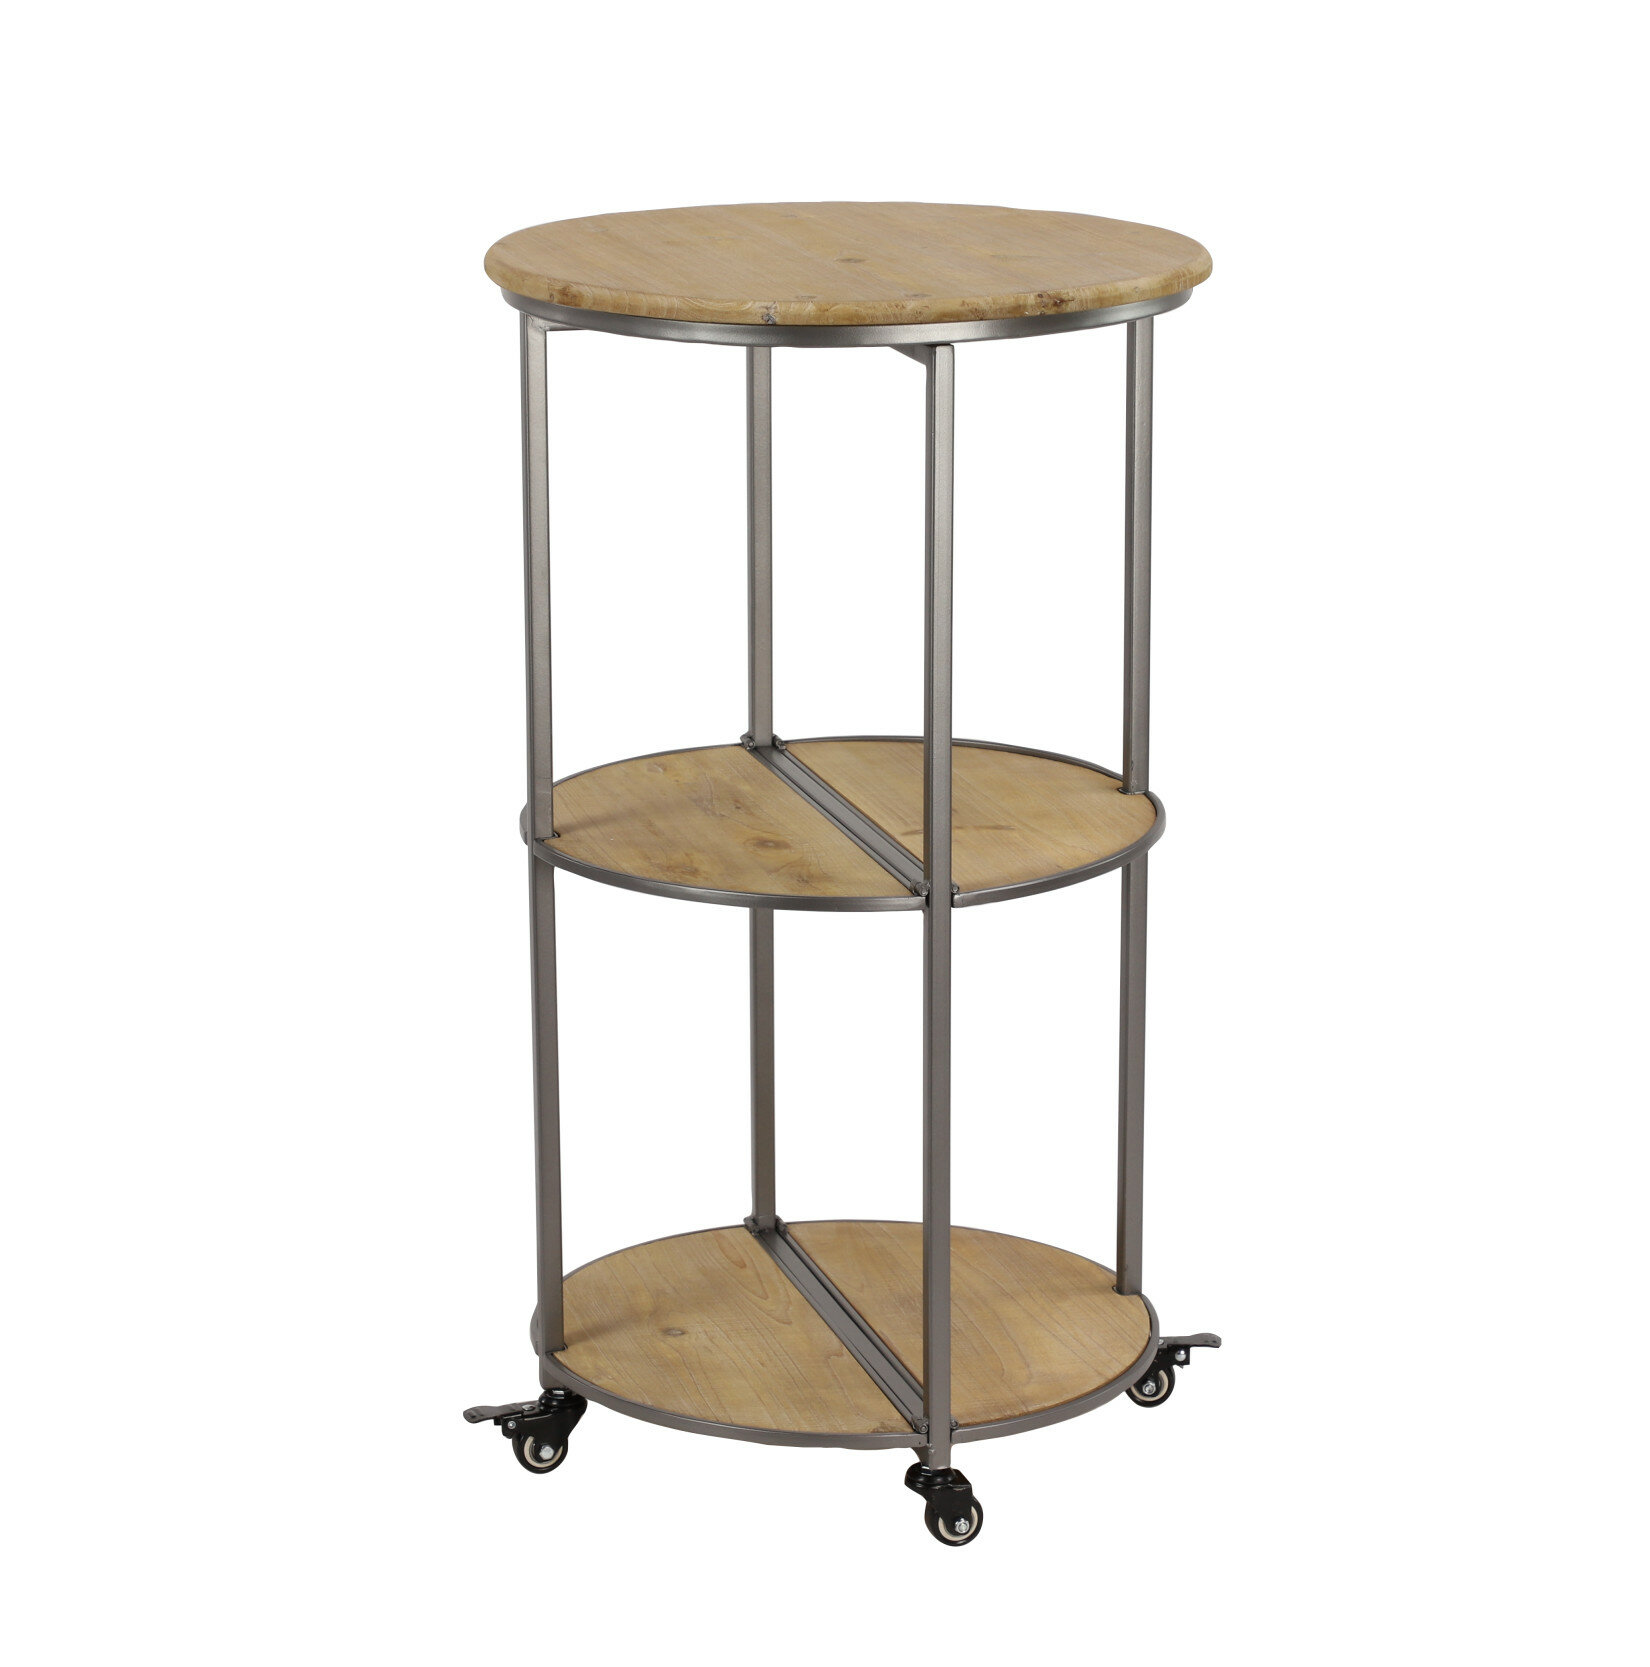 Beau Williston Forge Ramos Round Collapsible Rolling Bar Cart | Wayfair